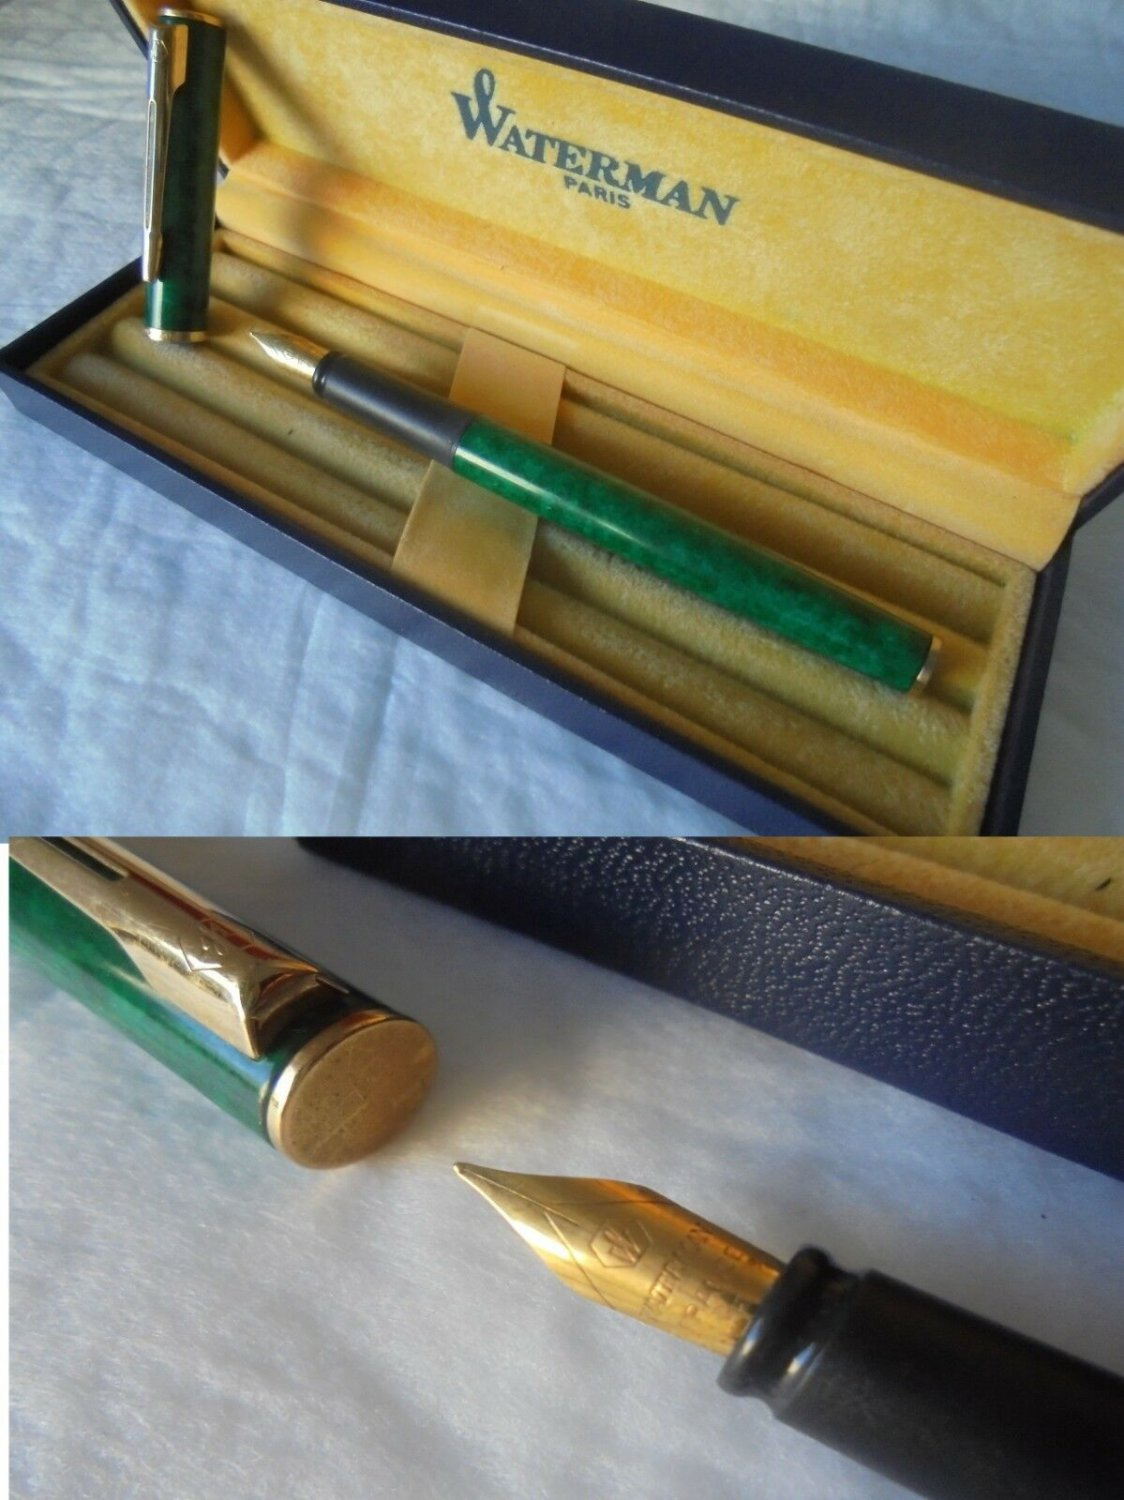 WATERMAN APOSTROPHE Fountain pen lacque green color + gift box Original